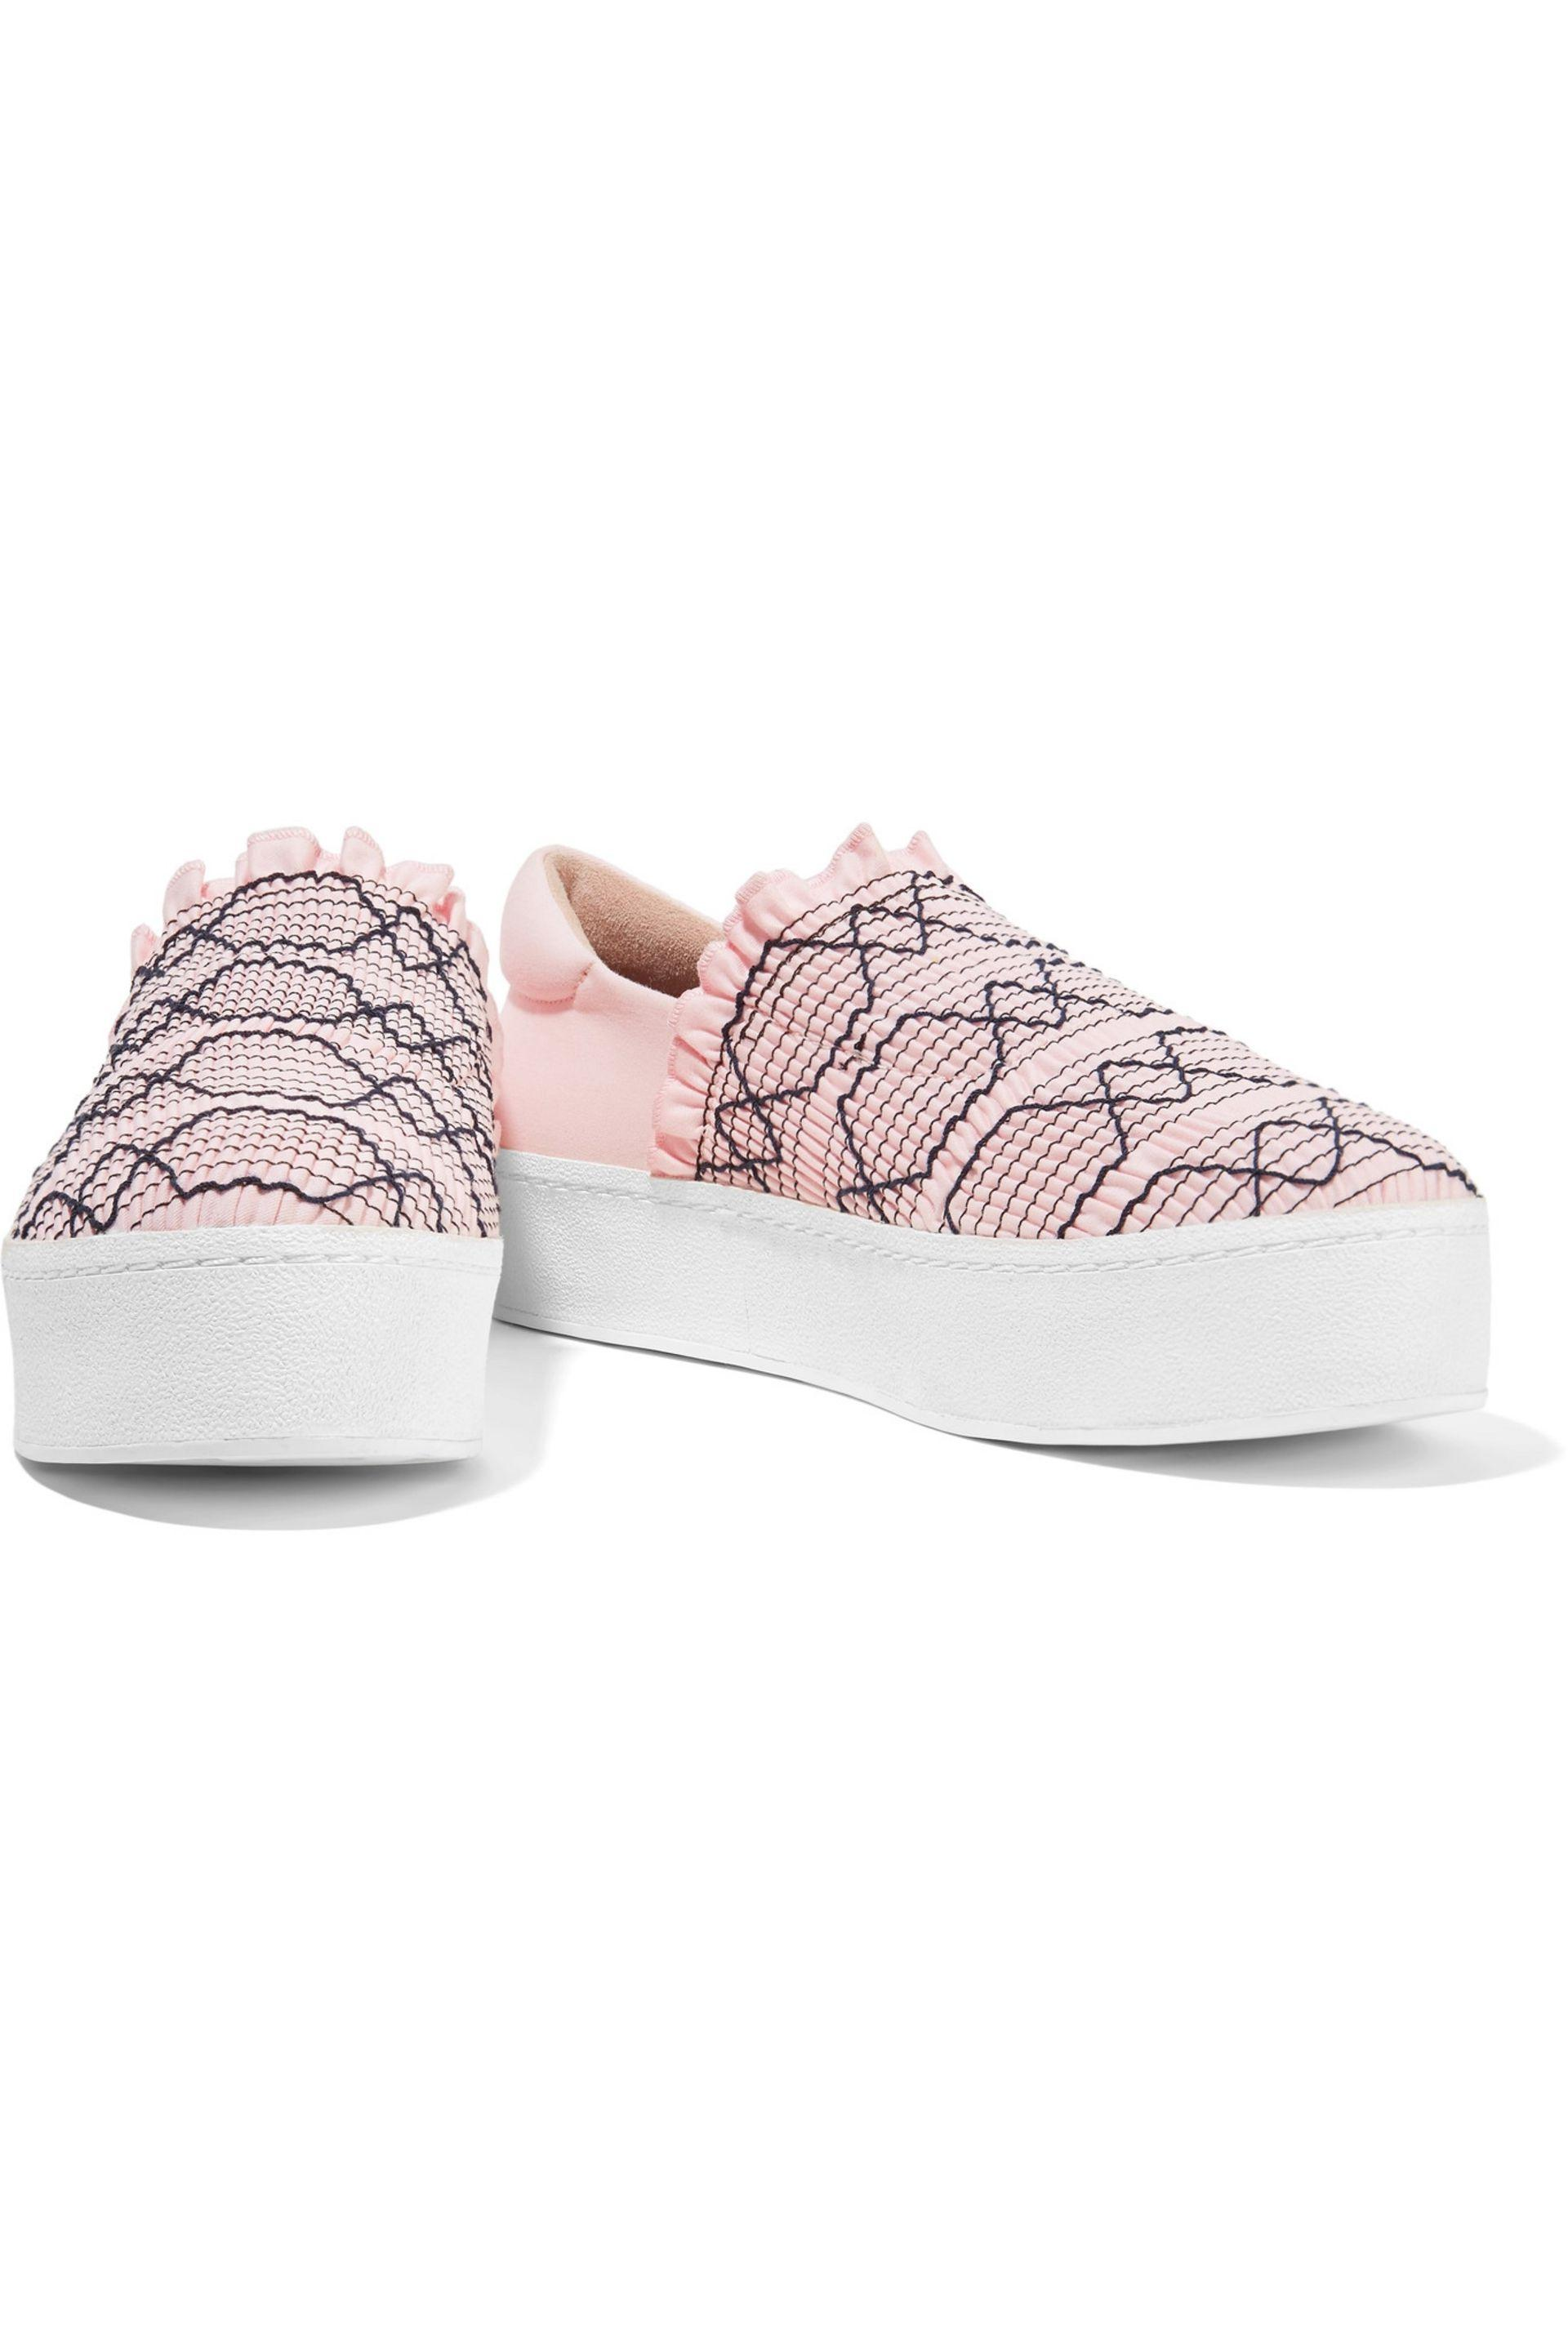 504607a583ca Opening Ceremony - Woman Cici Shirred Embroidered Canvas Slip-on Platform  Sneakers Pastel Pink -. View fullscreen